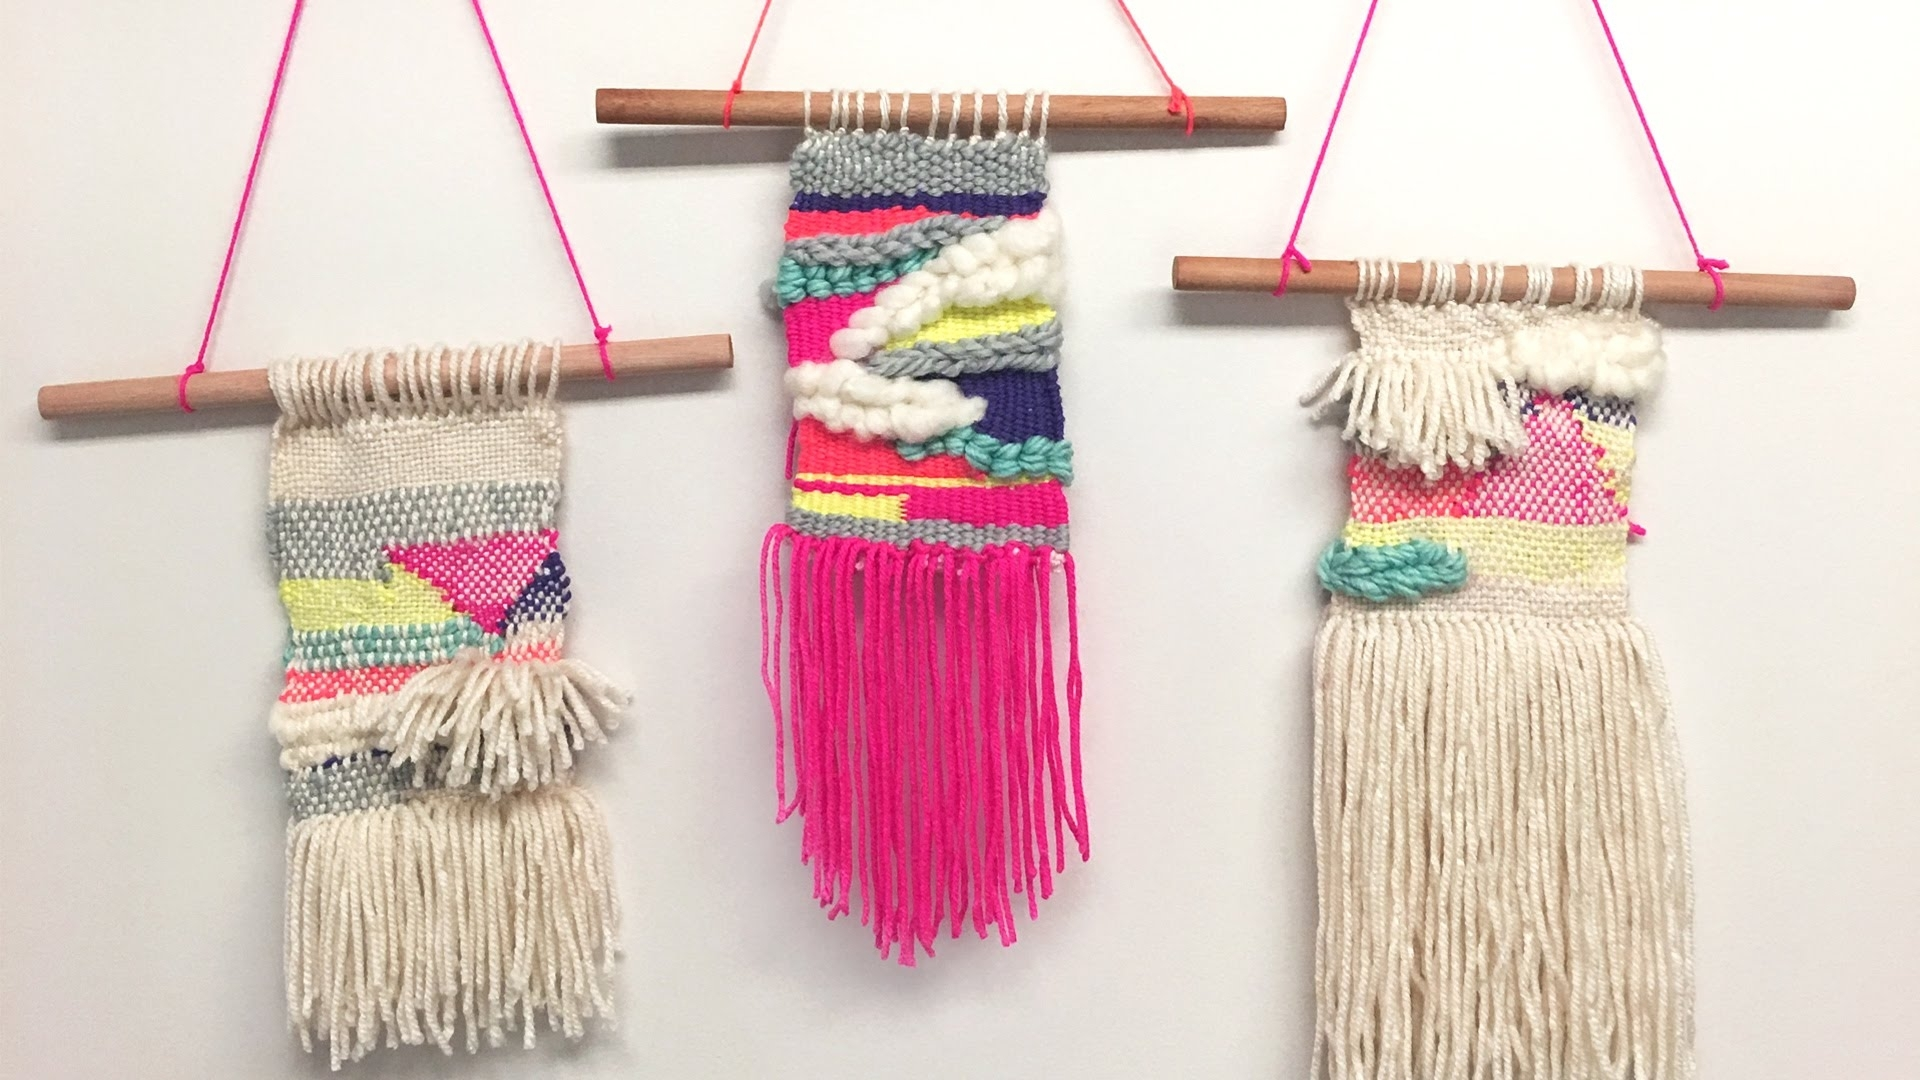 Whatdaymade Diy: Tissage Woven Wall Hagging – Youtube For Newest Diy Textile Wall Art (View 14 of 15)